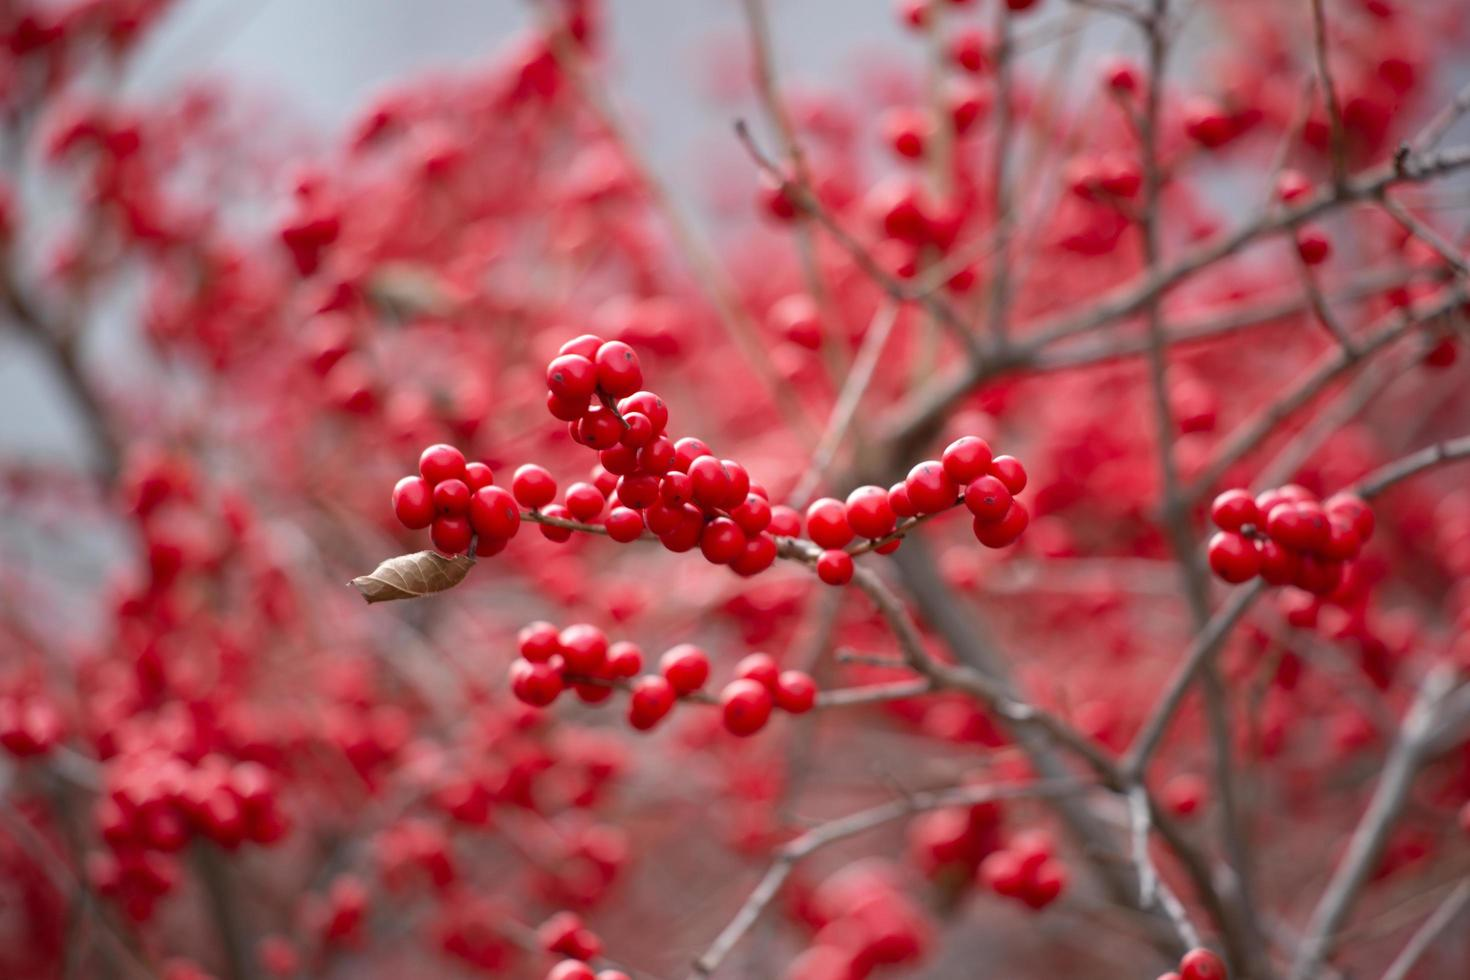 Red berries growing on branch photo